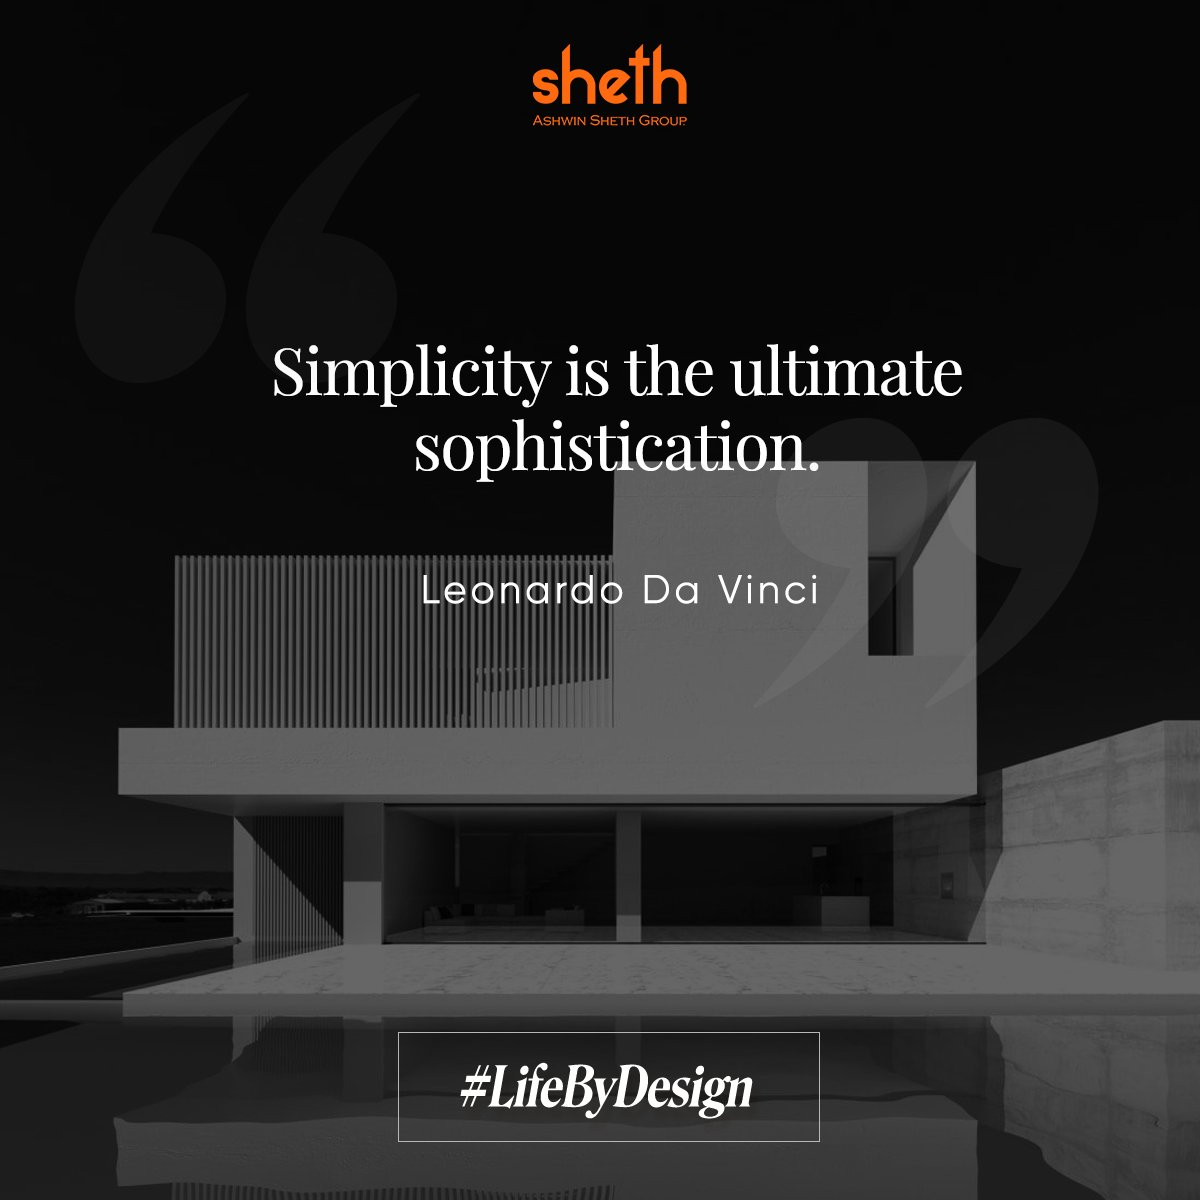 Our #LifeByDesign philosophy is in line with this belief by one of the greatest inventors and architects of all time.  #AshwinShethGroup #ASG #quote #home #design #dreamhome #realty #archigram #realtorlife #interiordesign #realestate #property https://t.co/fKCTou1Yrn